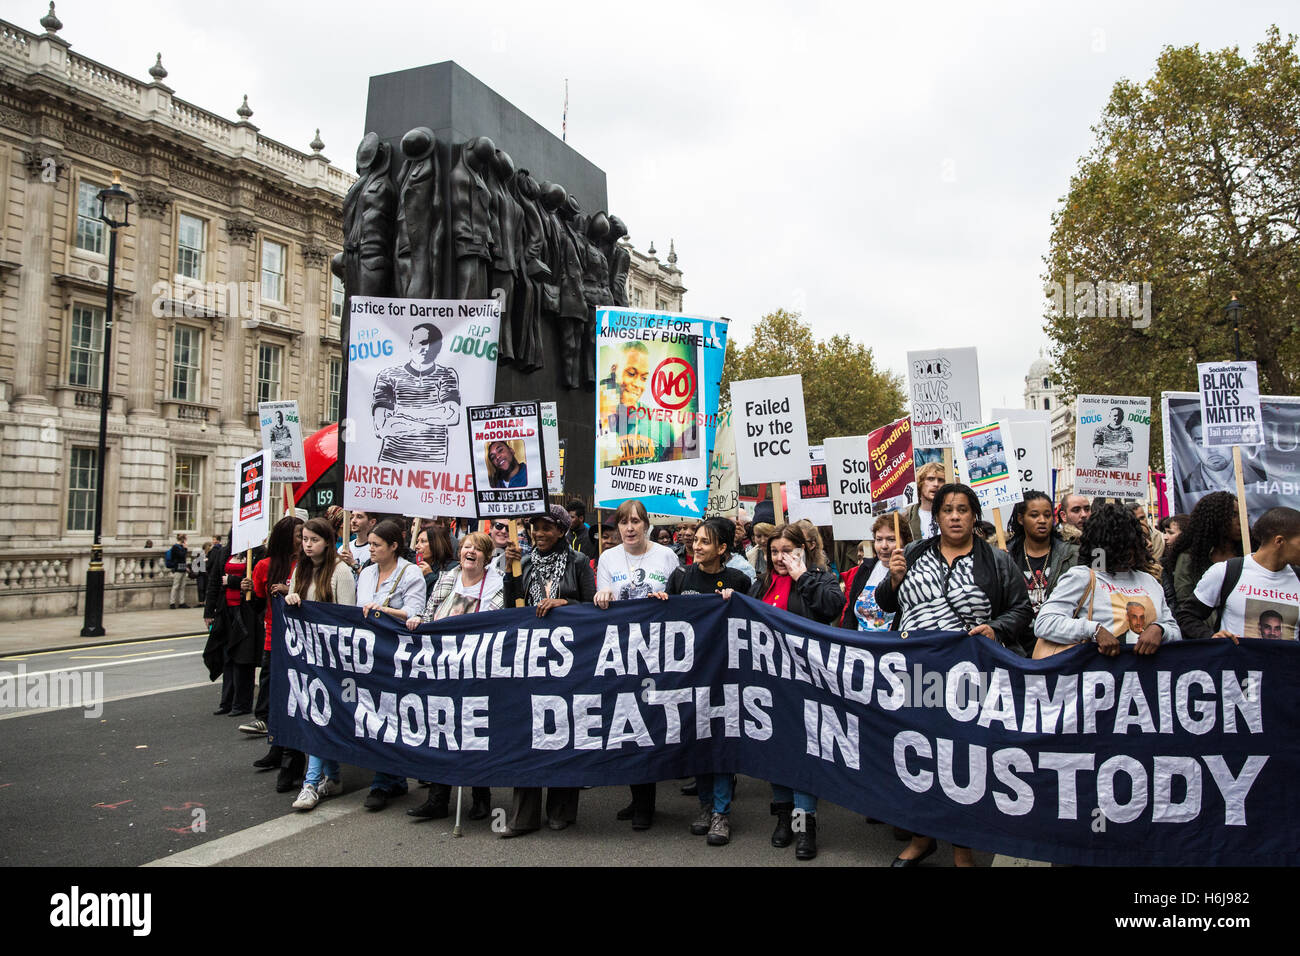 London, UK. 29th October, 2016. Campaigners from the United Families and Friends Campaign (UFFC) march past the - Stock Image